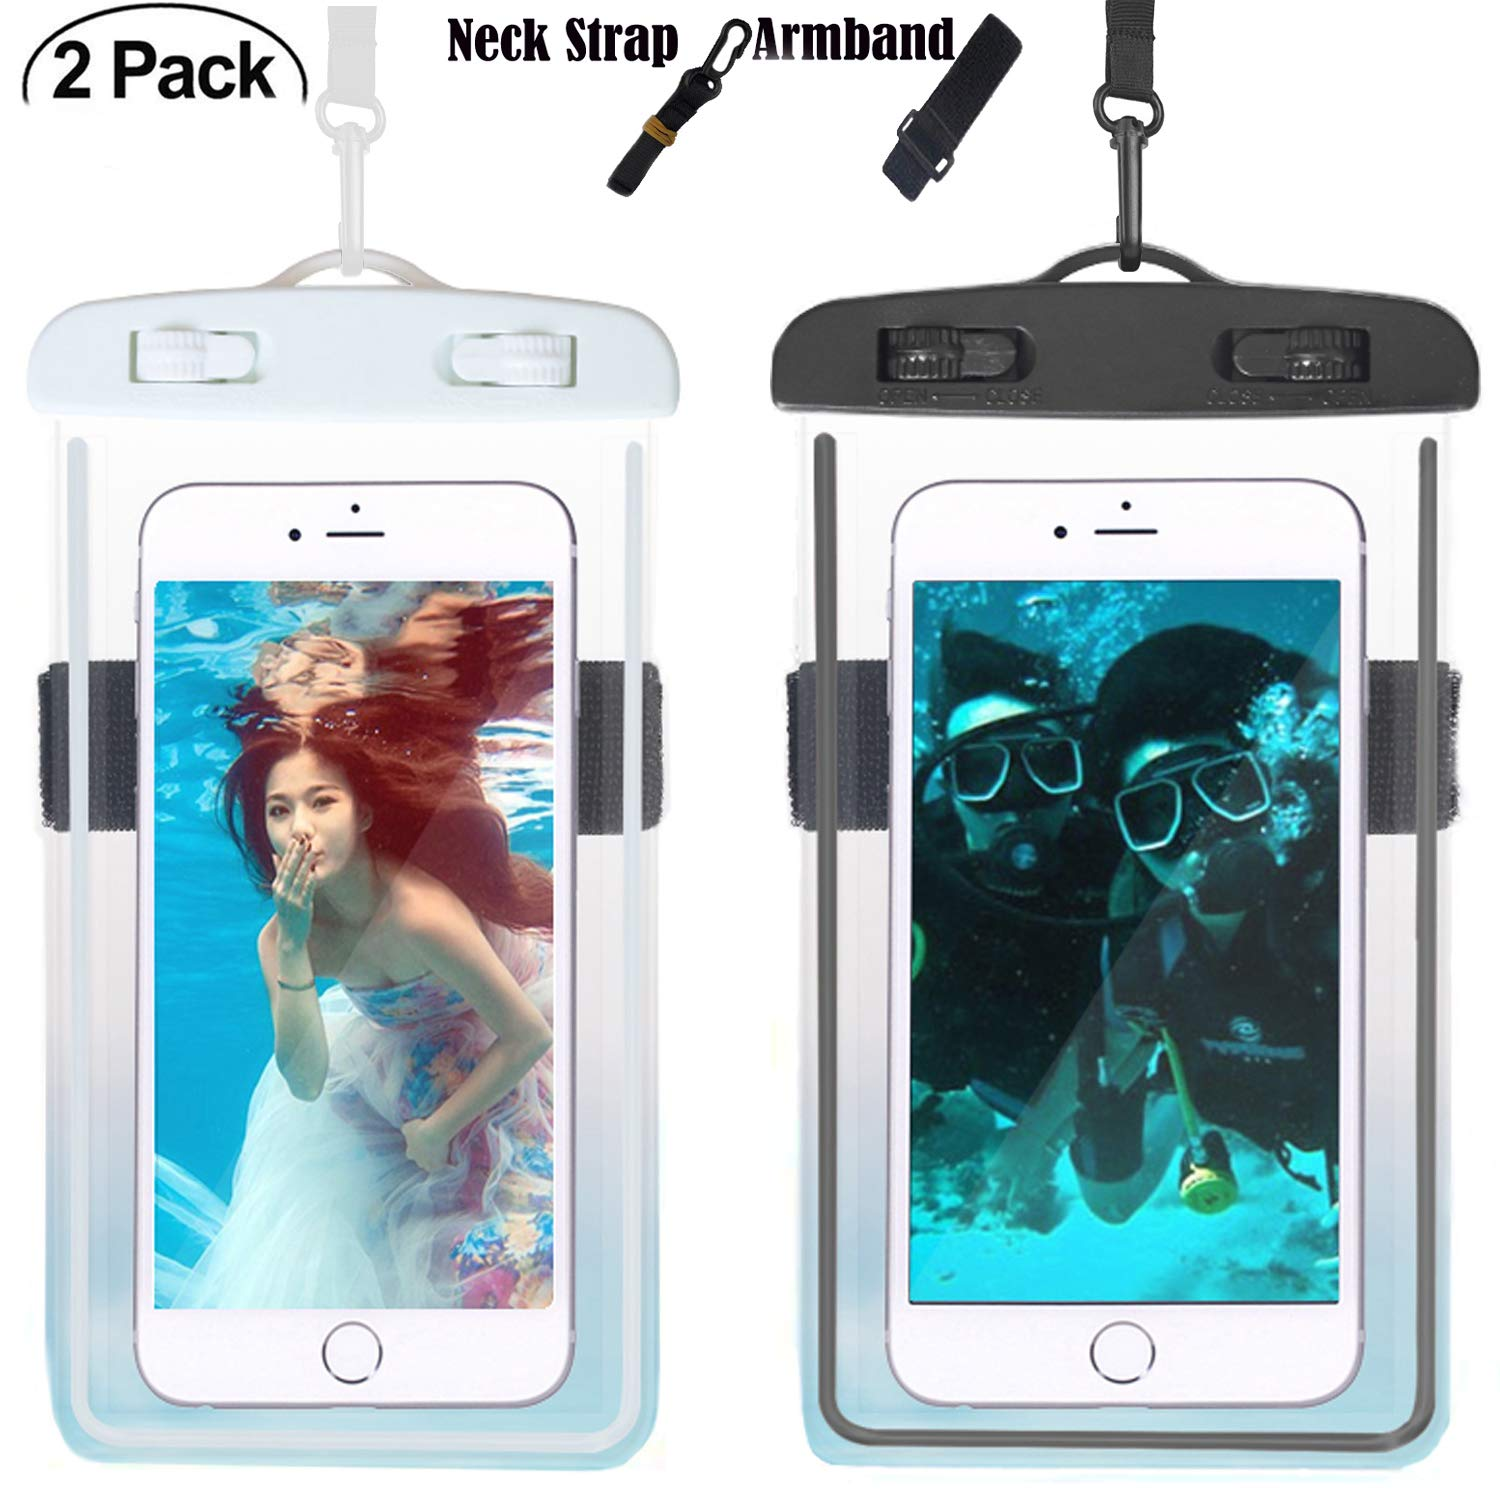 Universal Waterproof Case, Waterproof Phone Pouch Dry Bag with Armband & Neck Strap for iPhone X 8 8Plus 7 7Plus 6S 6SP 6 6Plus, Samsung Galaxy S9/S9 Plus/S8 Plus/Note 8 6 5 up to 6.0'' (White,Black)